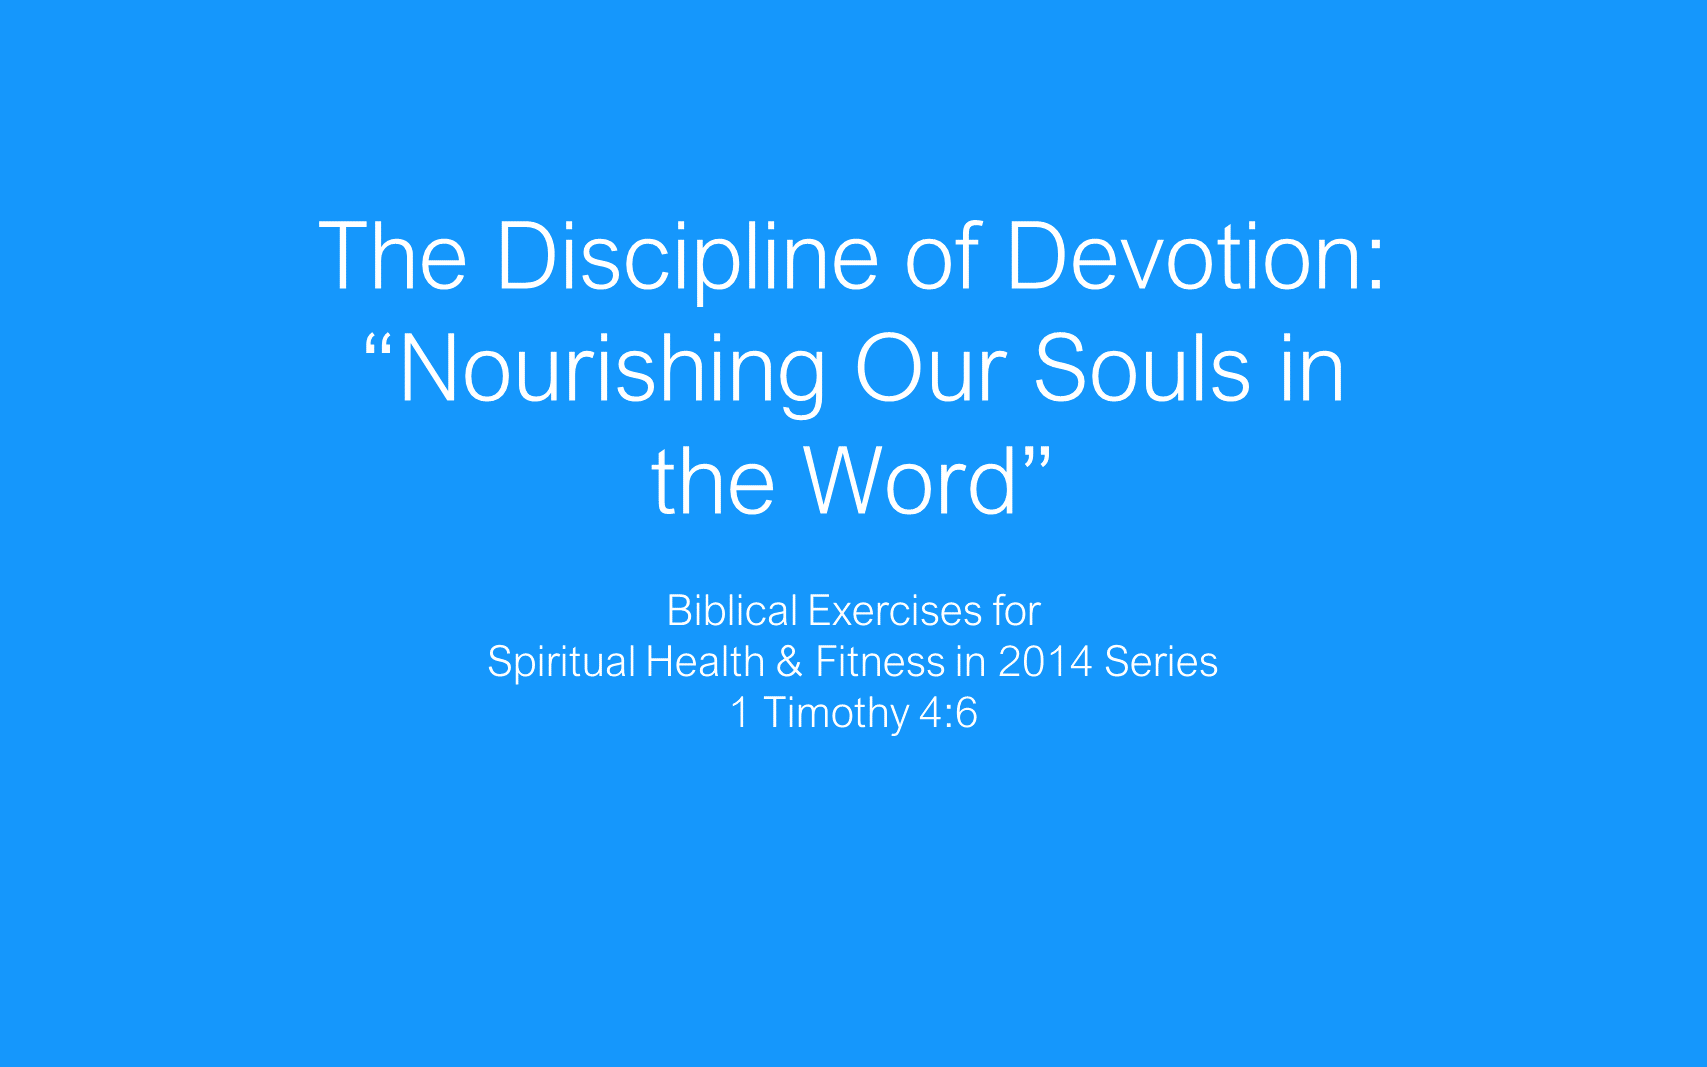 ESH-06 - The Discipline Of Devotion - Nourishing Our Souls In The World (2)